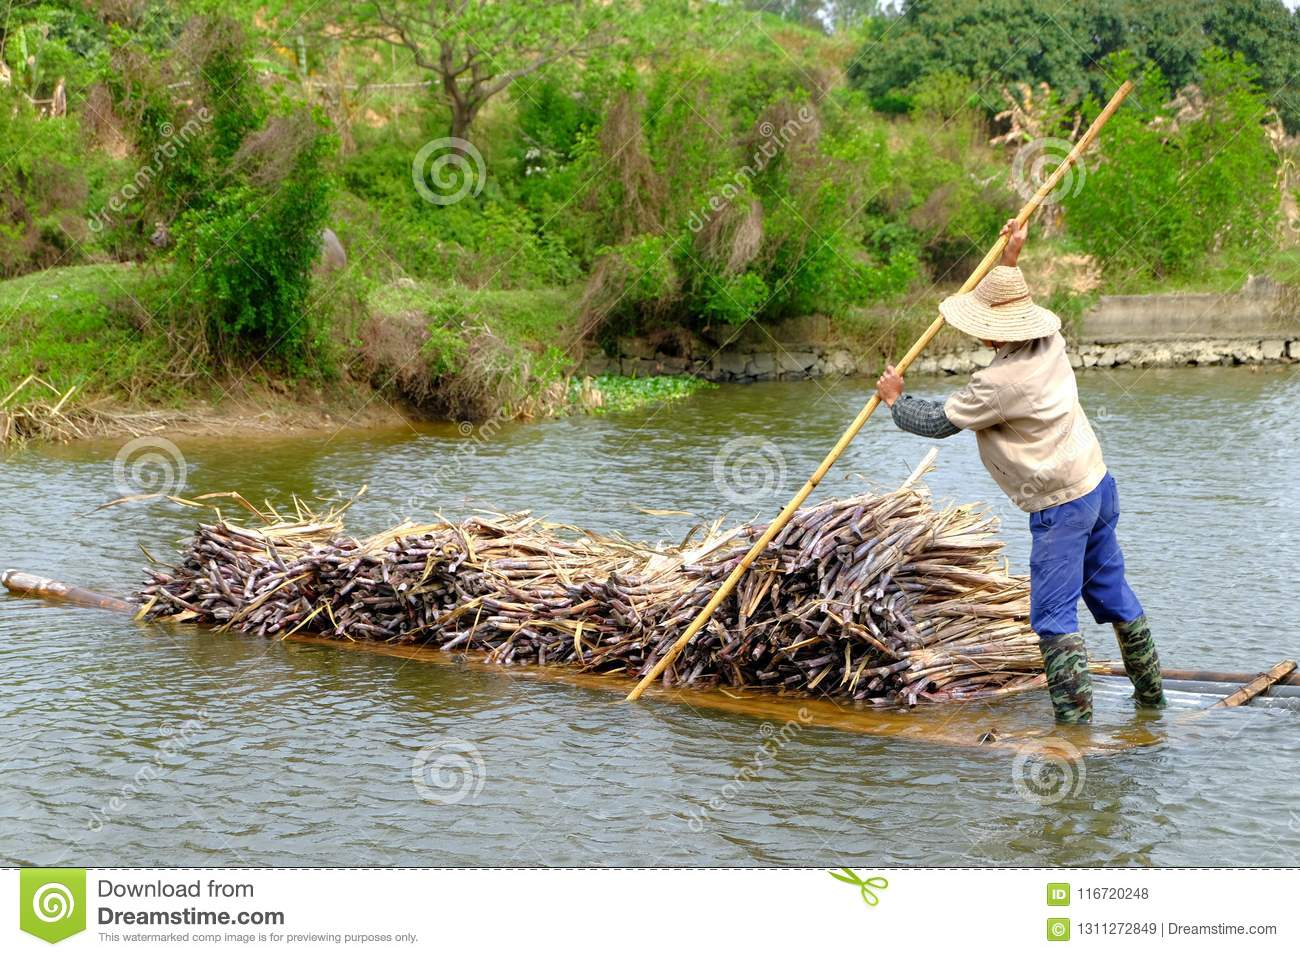 Carrying sugarcane by a bamboo raft